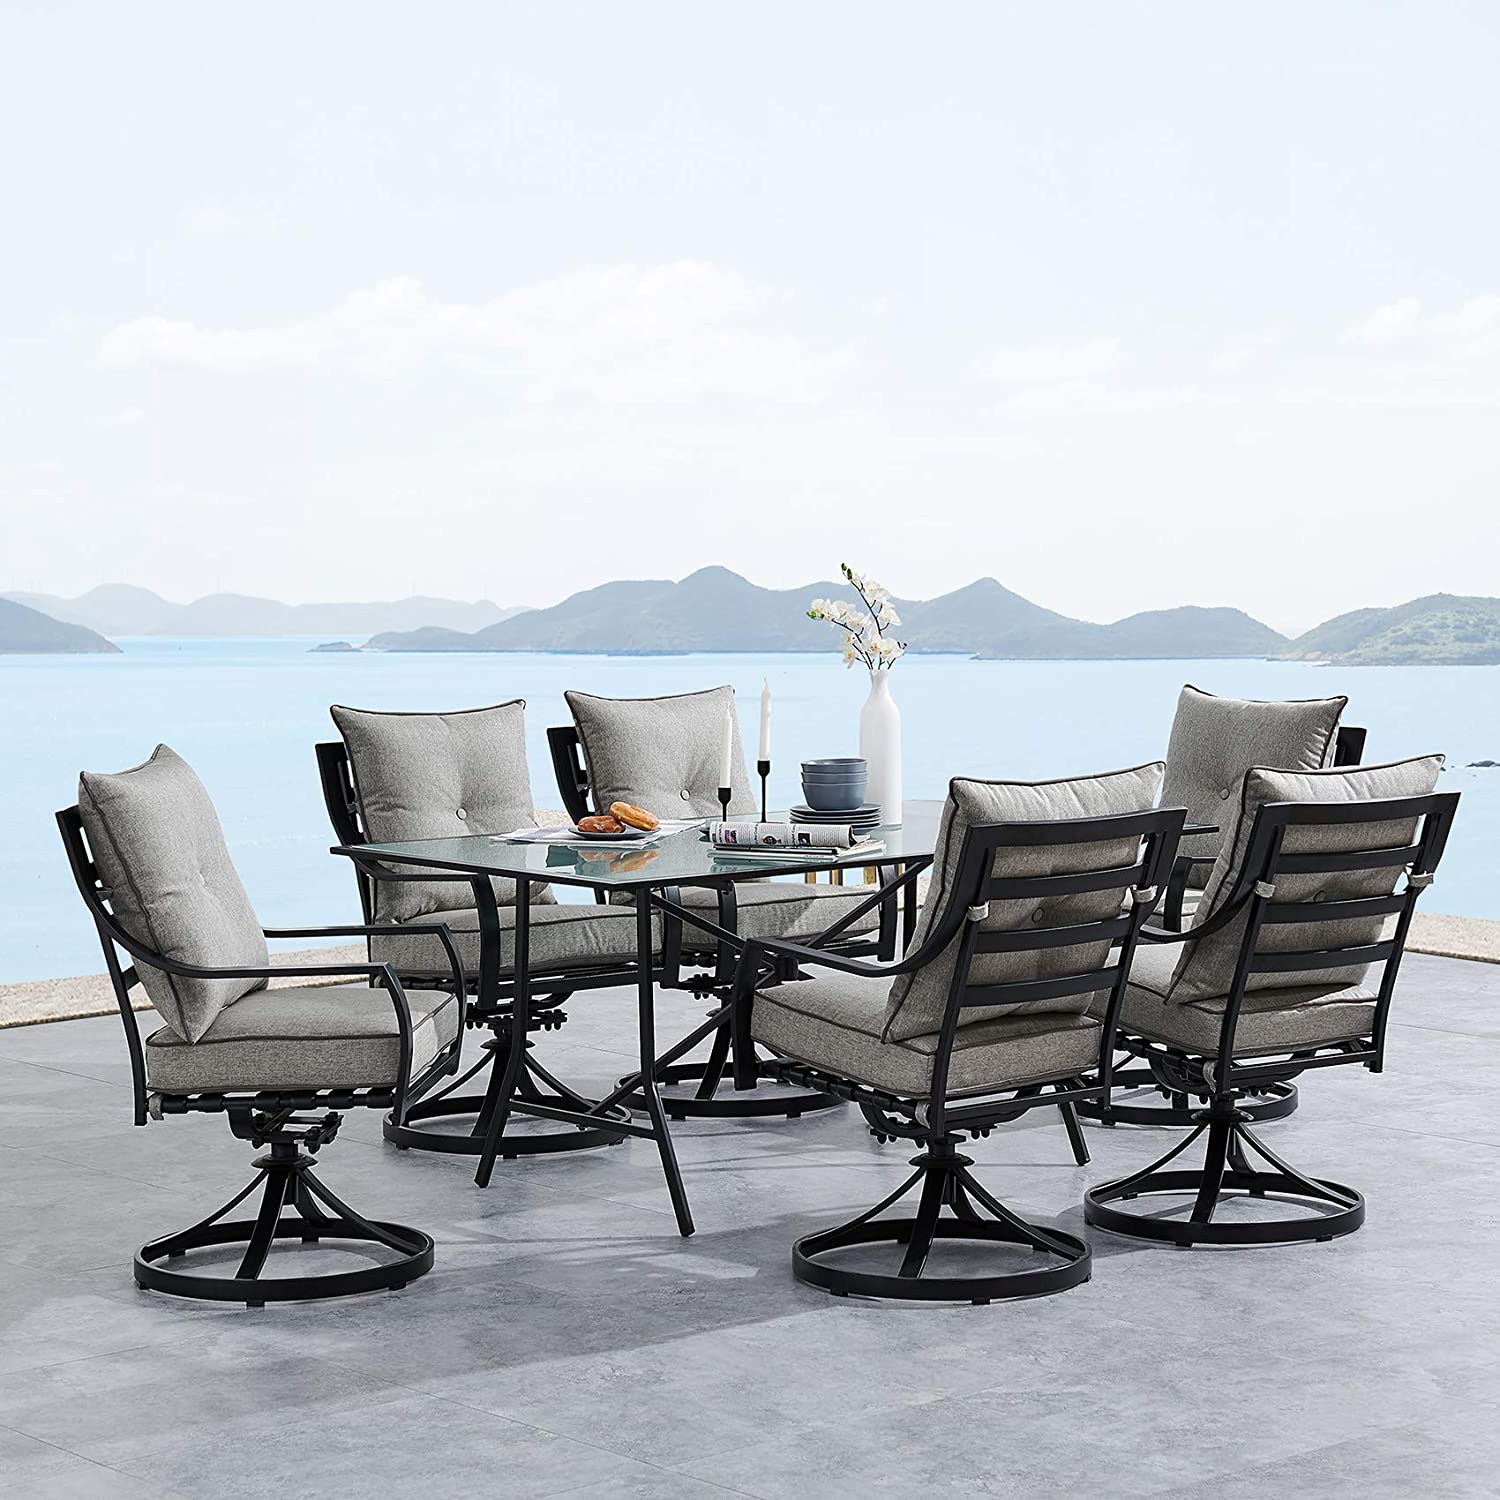 """Hanover LAVDN7PCSW-SLV Lavallette 7-Piece Silver Linings with 6 Swivel Rockers and a 66"""" x 38"""" Glass-Top Table Outdoor Dining Set"""